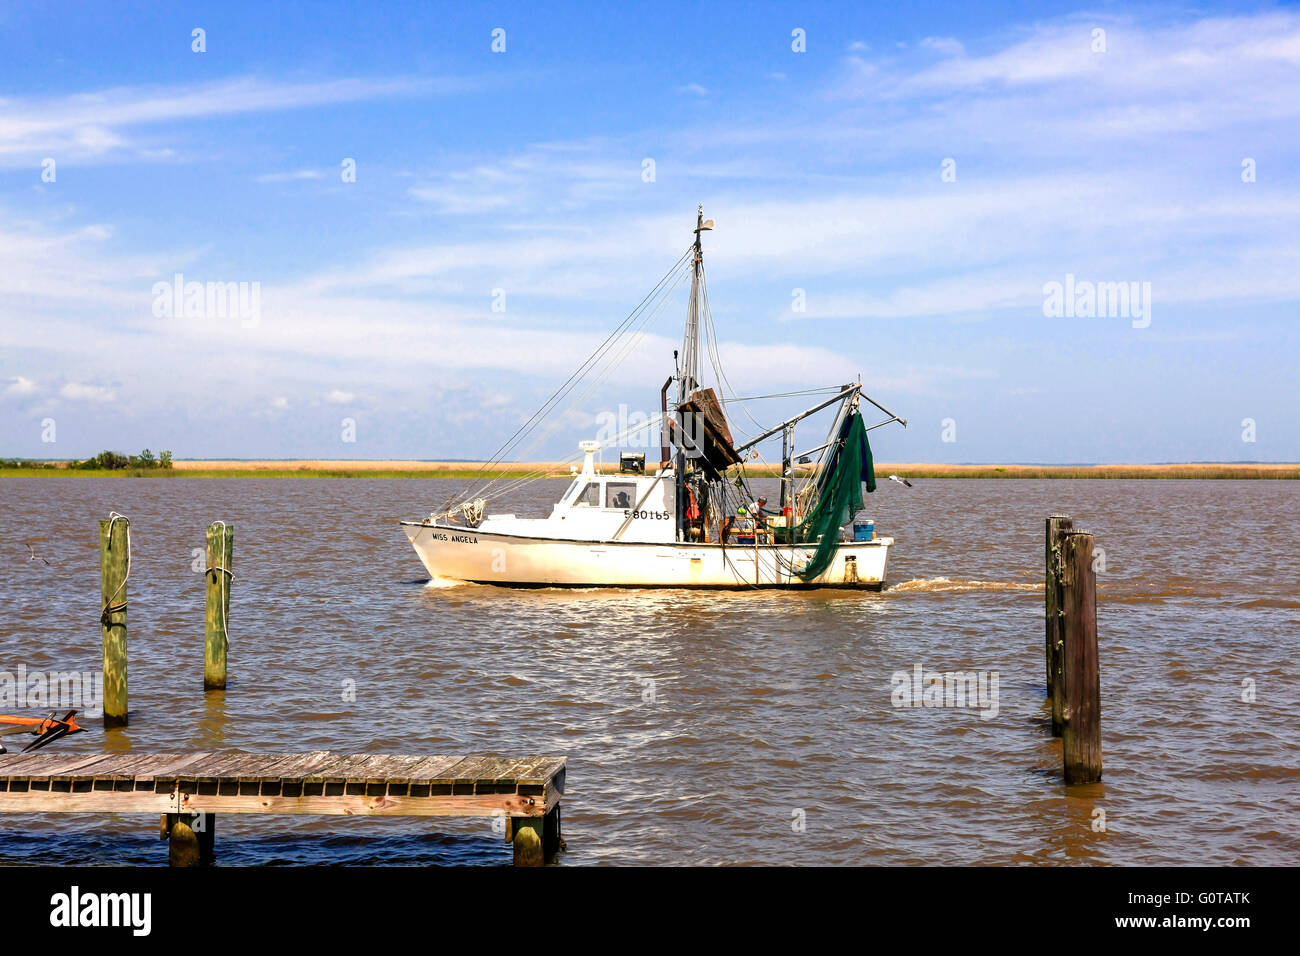 Fishing boat sails out of the estuary at Apalachicola, Florida into the Gulf of Mexico - Stock Image